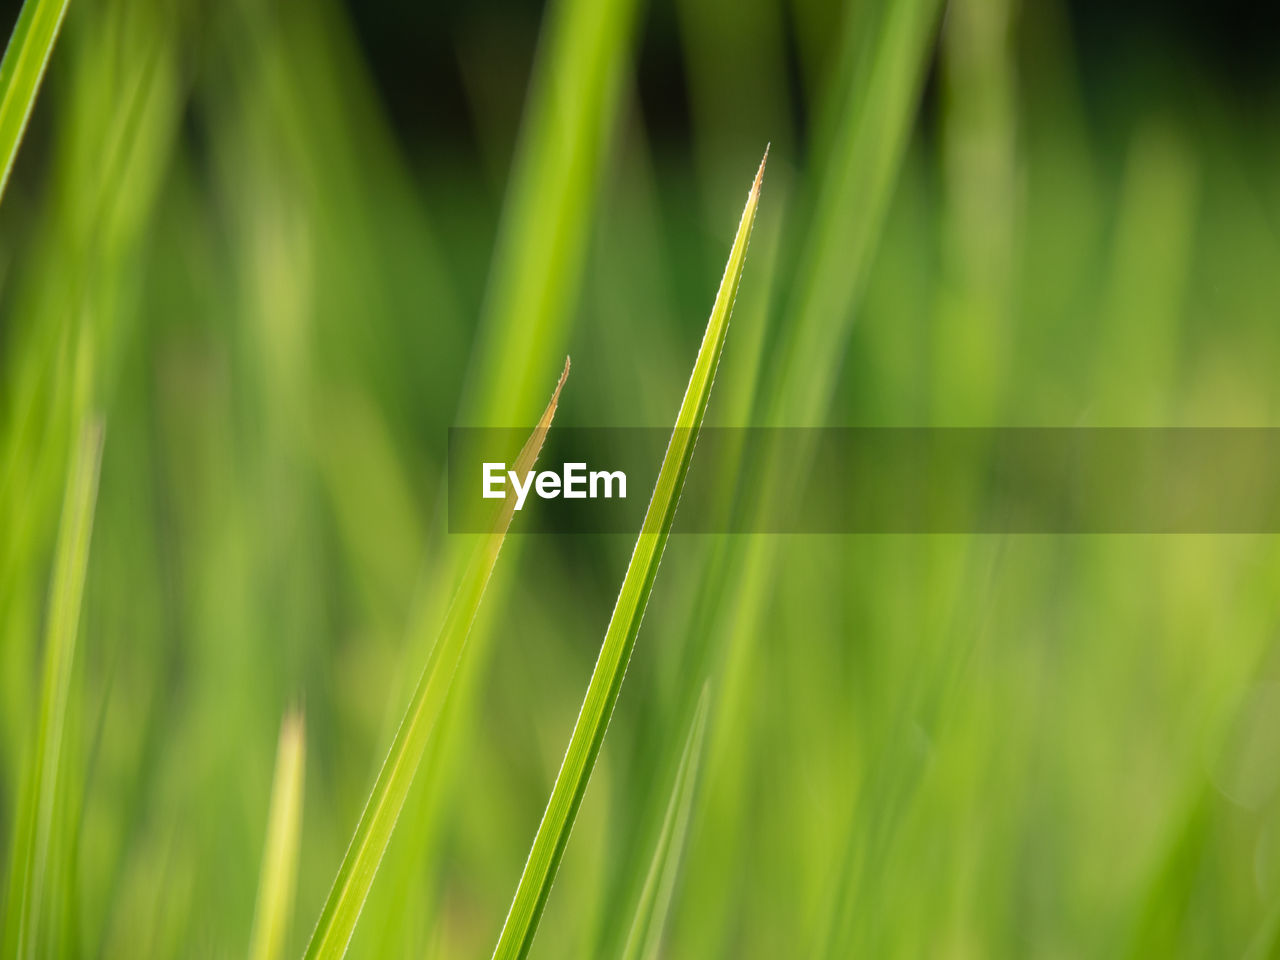 green color, growth, plant, beauty in nature, nature, selective focus, no people, grass, close-up, day, field, tranquility, blade of grass, agriculture, land, crop, focus on foreground, cereal plant, outdoors, rural scene